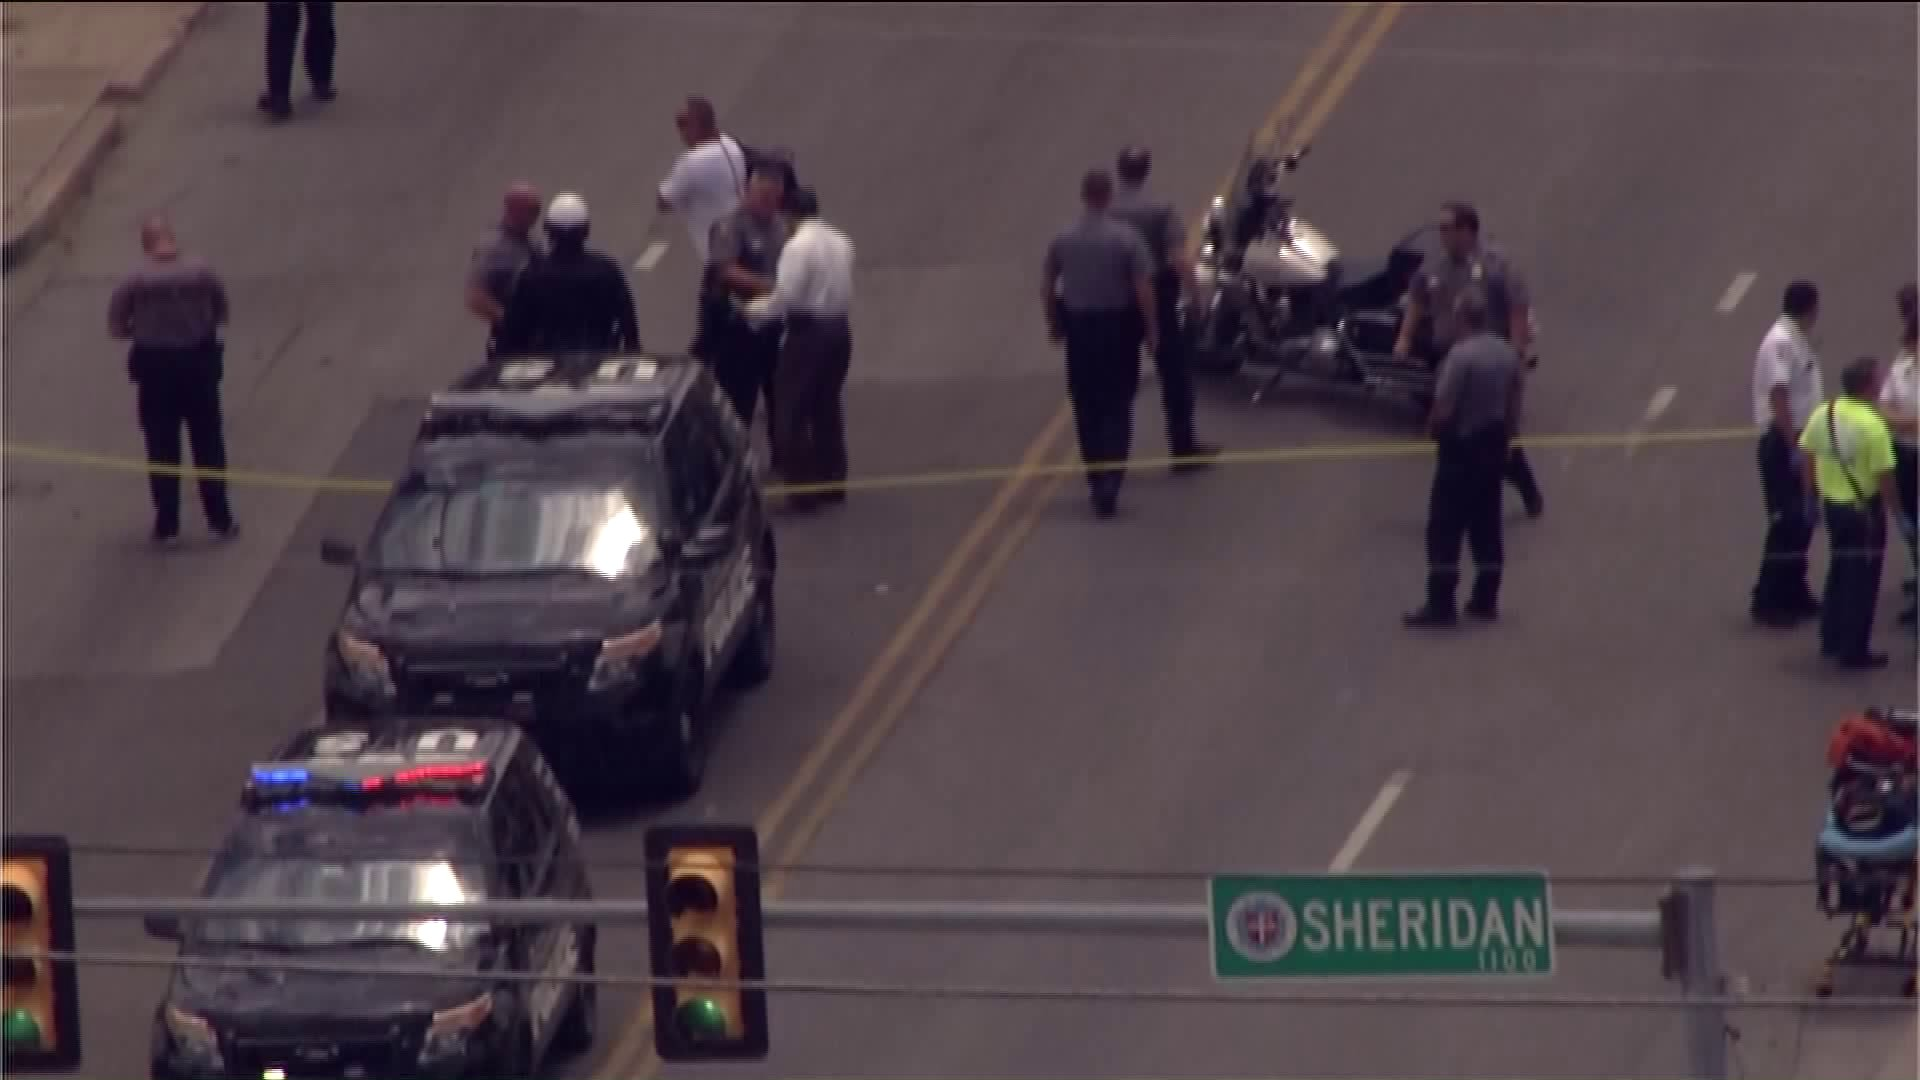 Officer involved shooting near Sheridan and Western